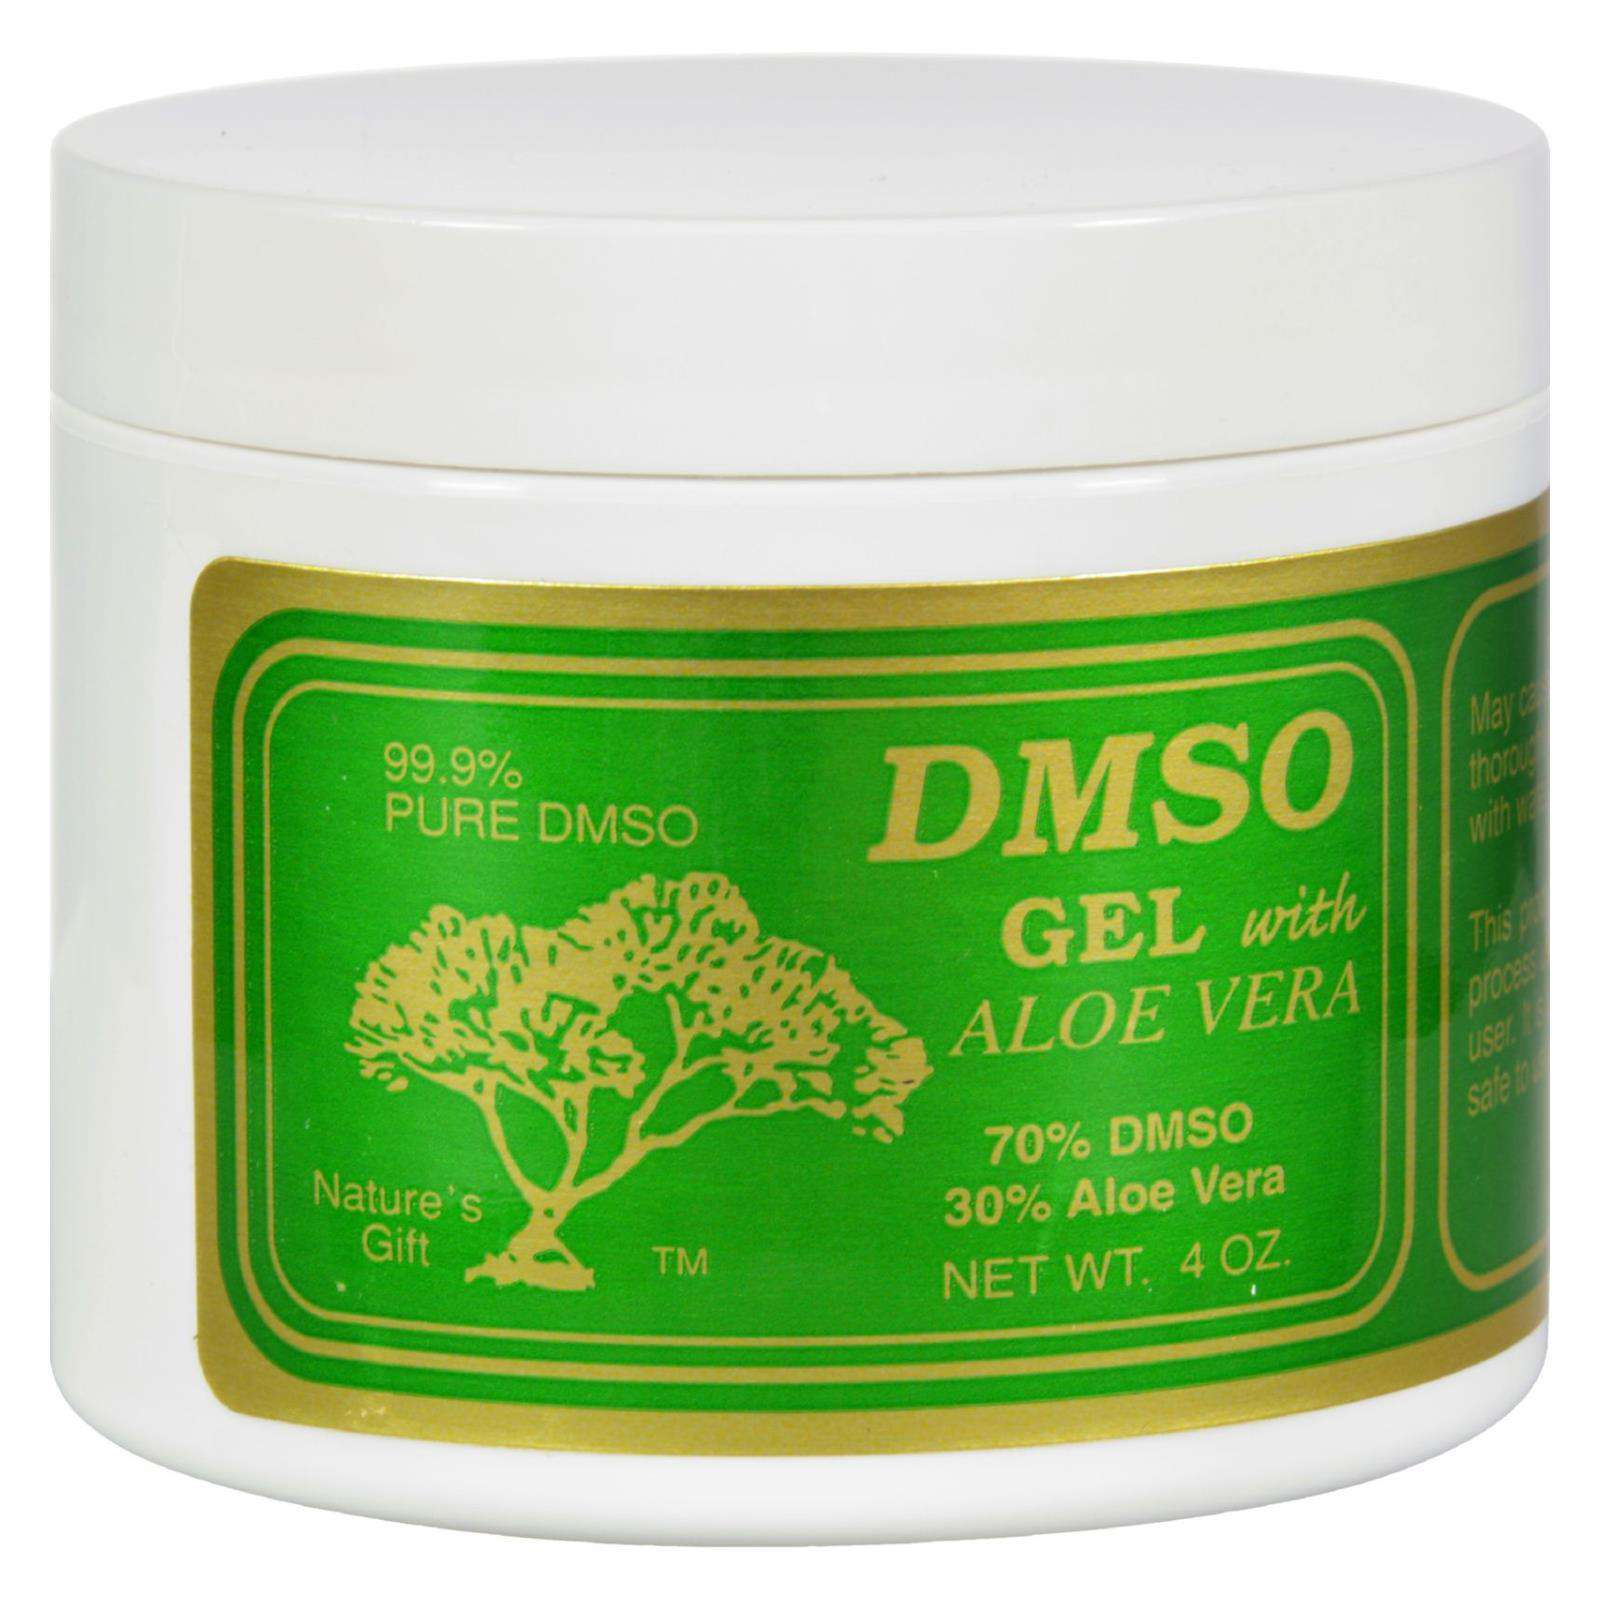 Dmso Gel With Aloe Vera - 4 Oz - BeeGreen